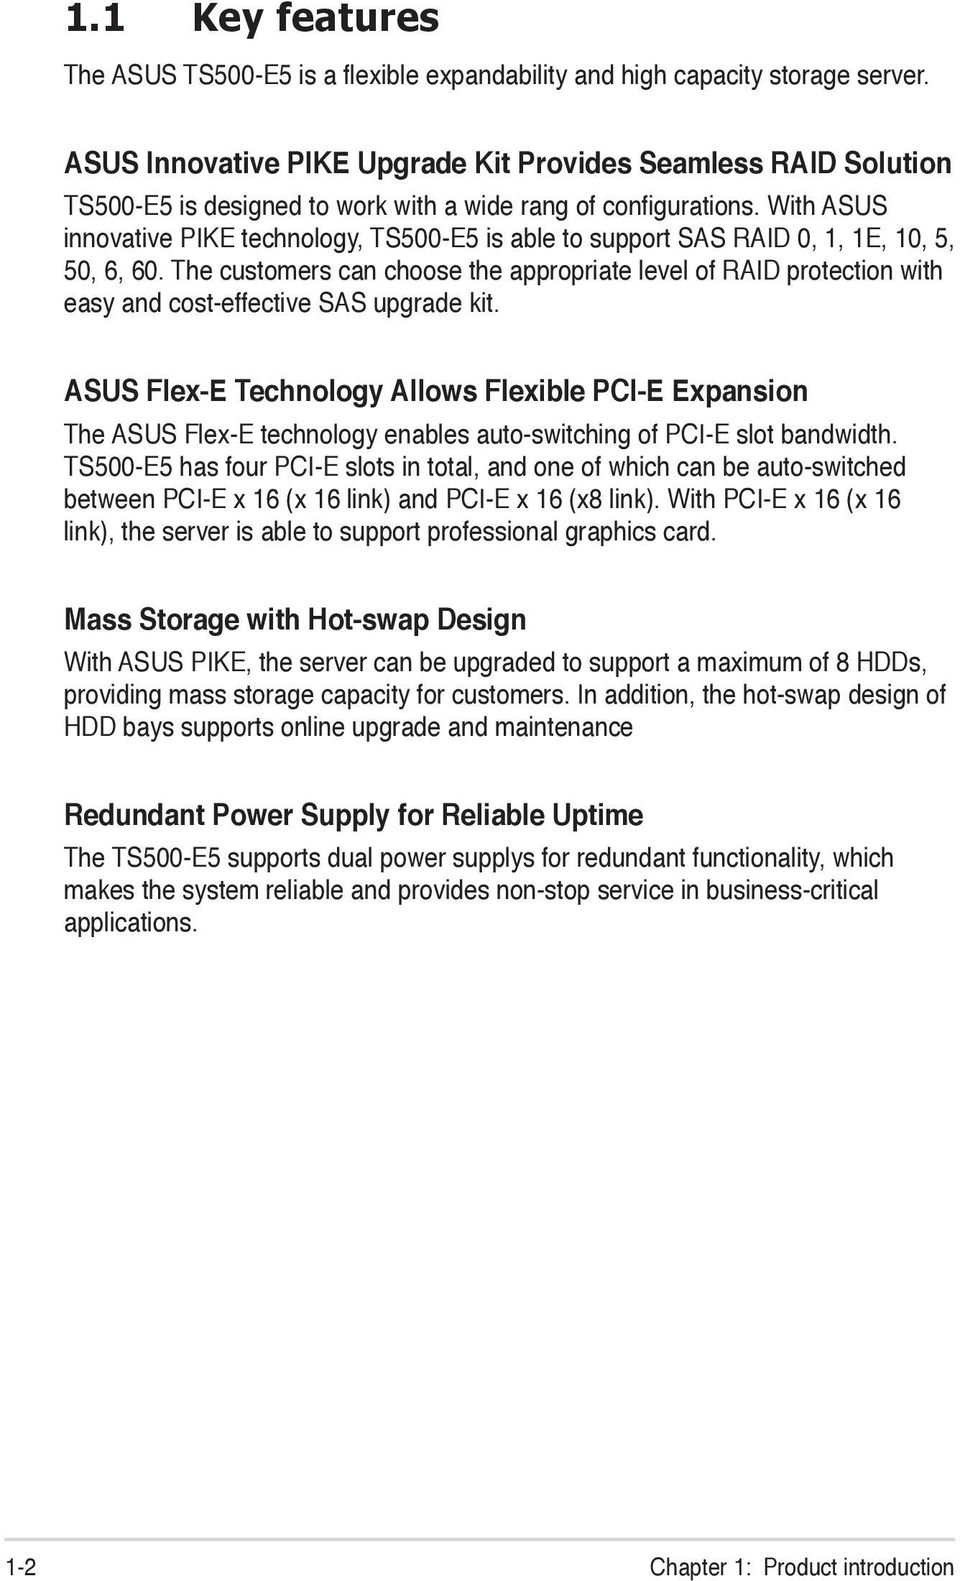 With ASUS innovative PIKE technology, TS500-E5 is able to support SAS RAID 0, 1, 1E, 10, 5, 50, 6, 60.